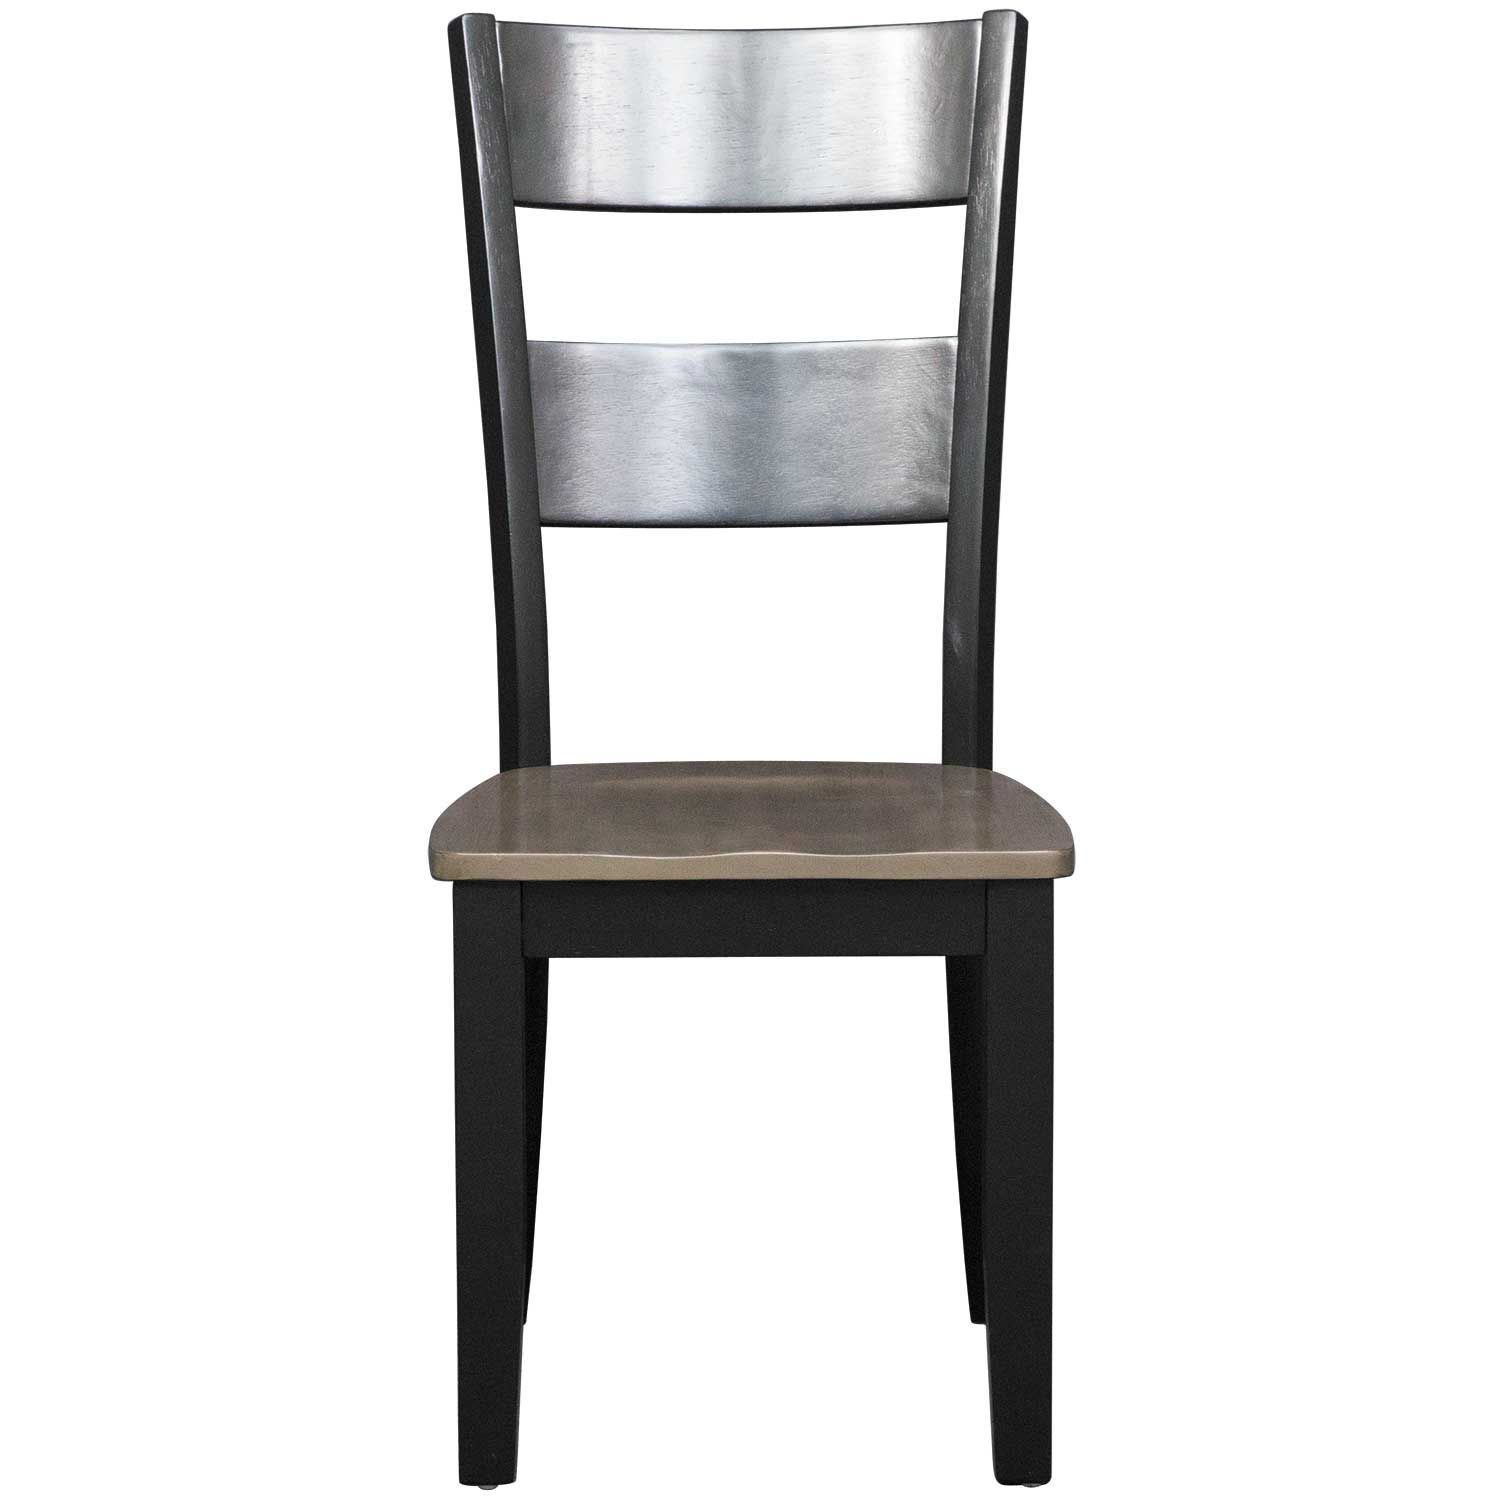 Earl Dining Side Chair | 8207-521-S | Holland House ...